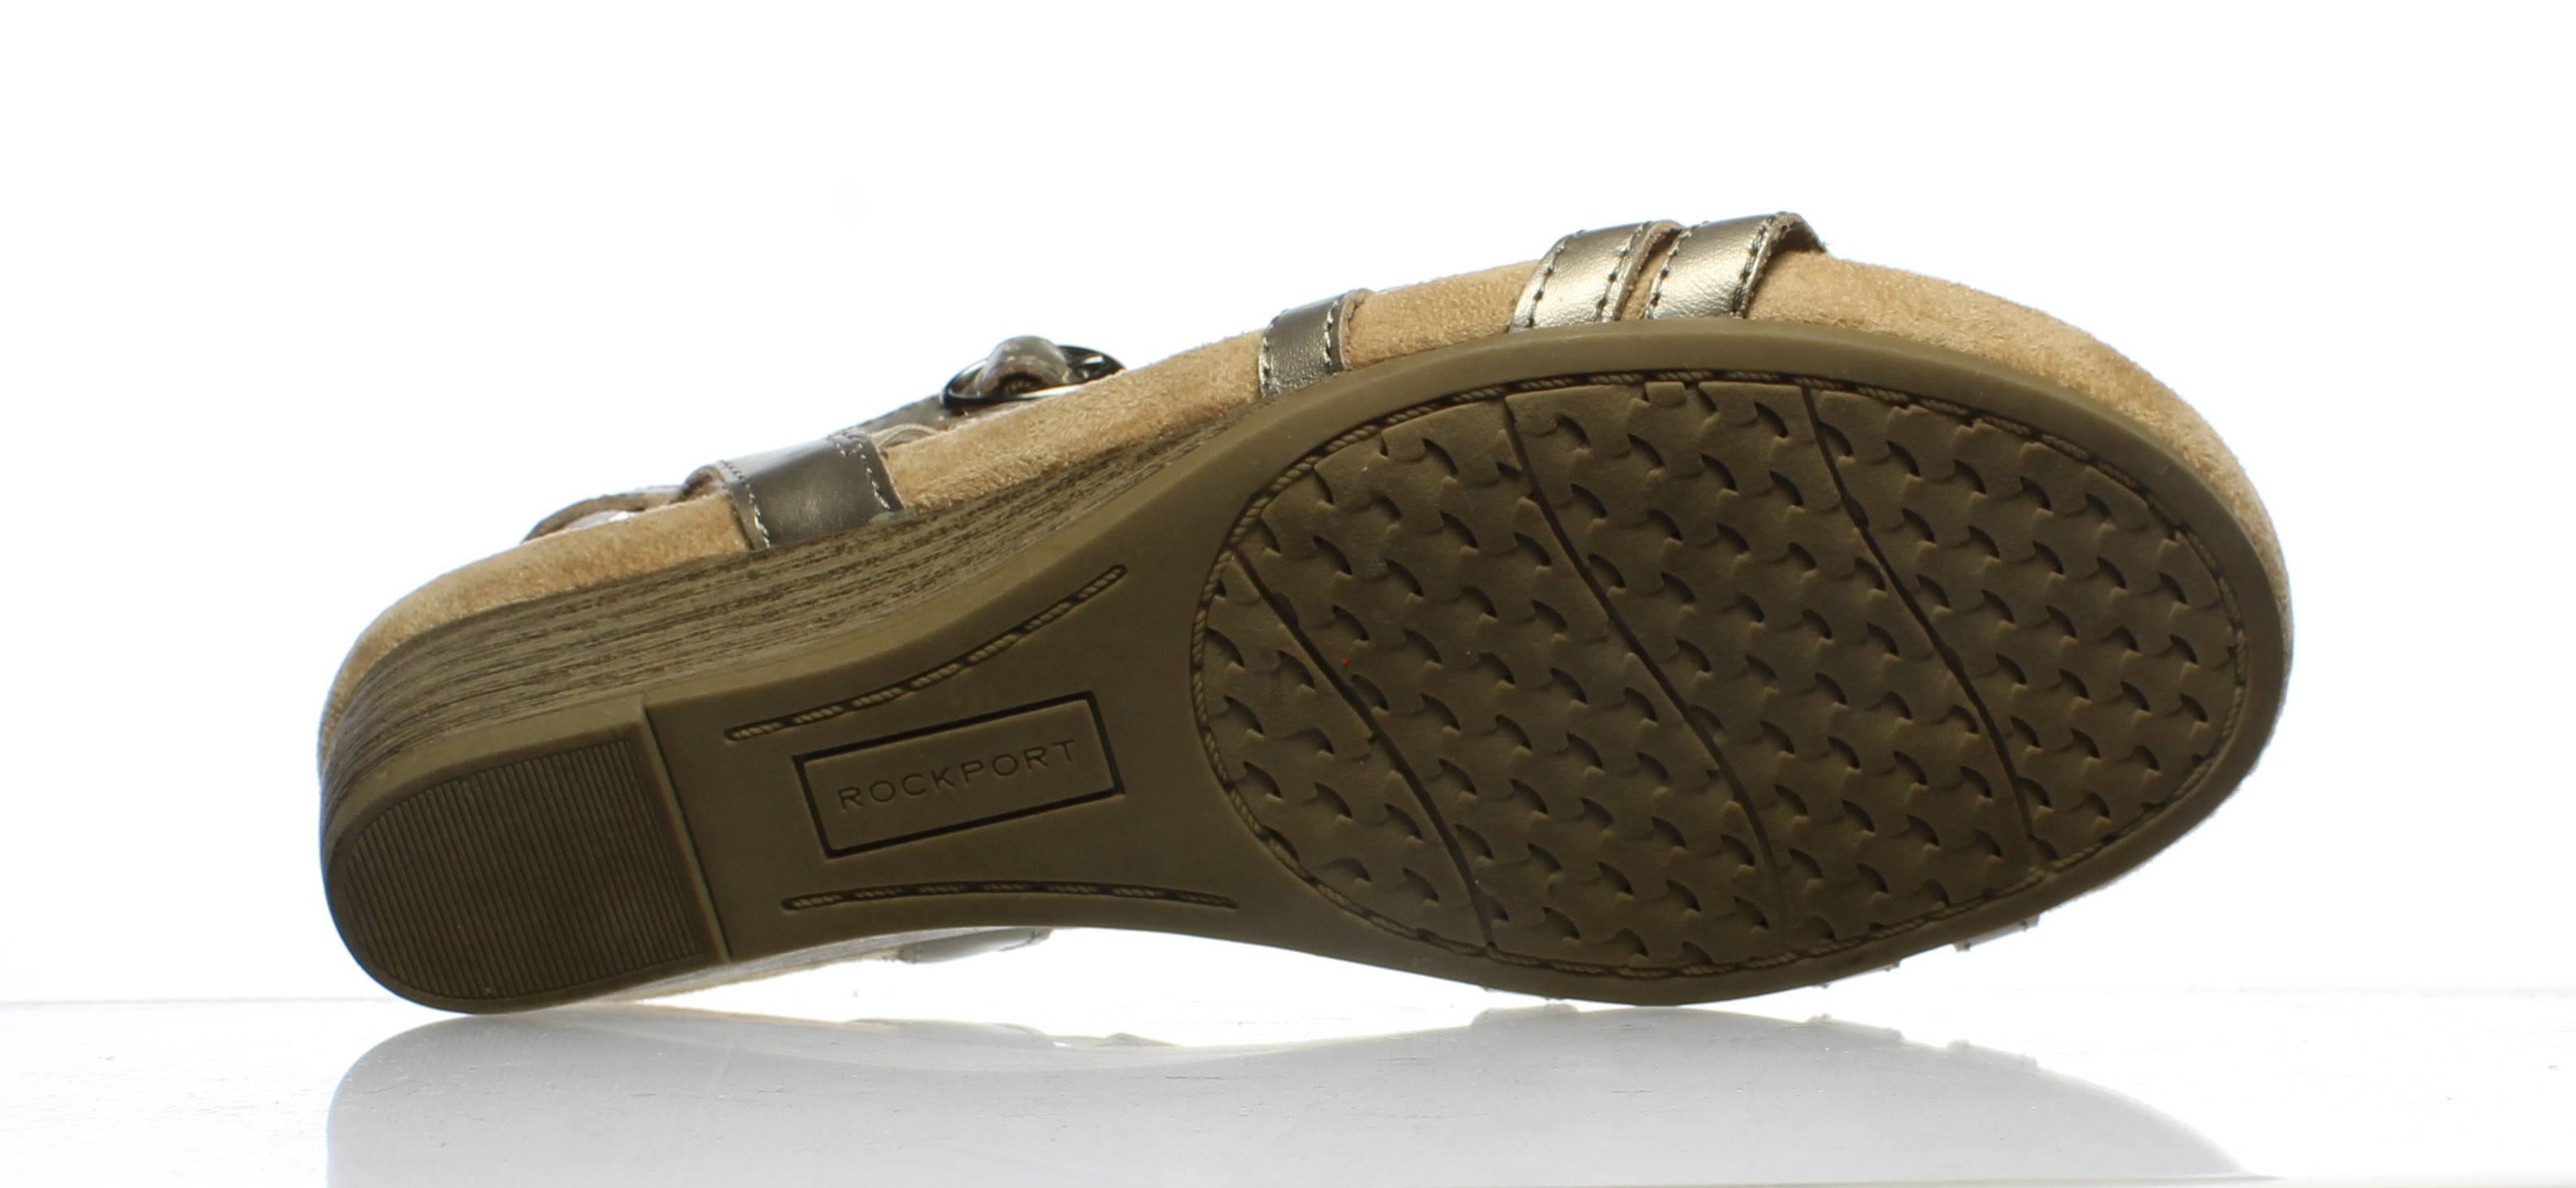 Responsible Cobb Hill Fiona By Rockport Sandals Taupe 7.5 Wide Making Things Convenient For Customers